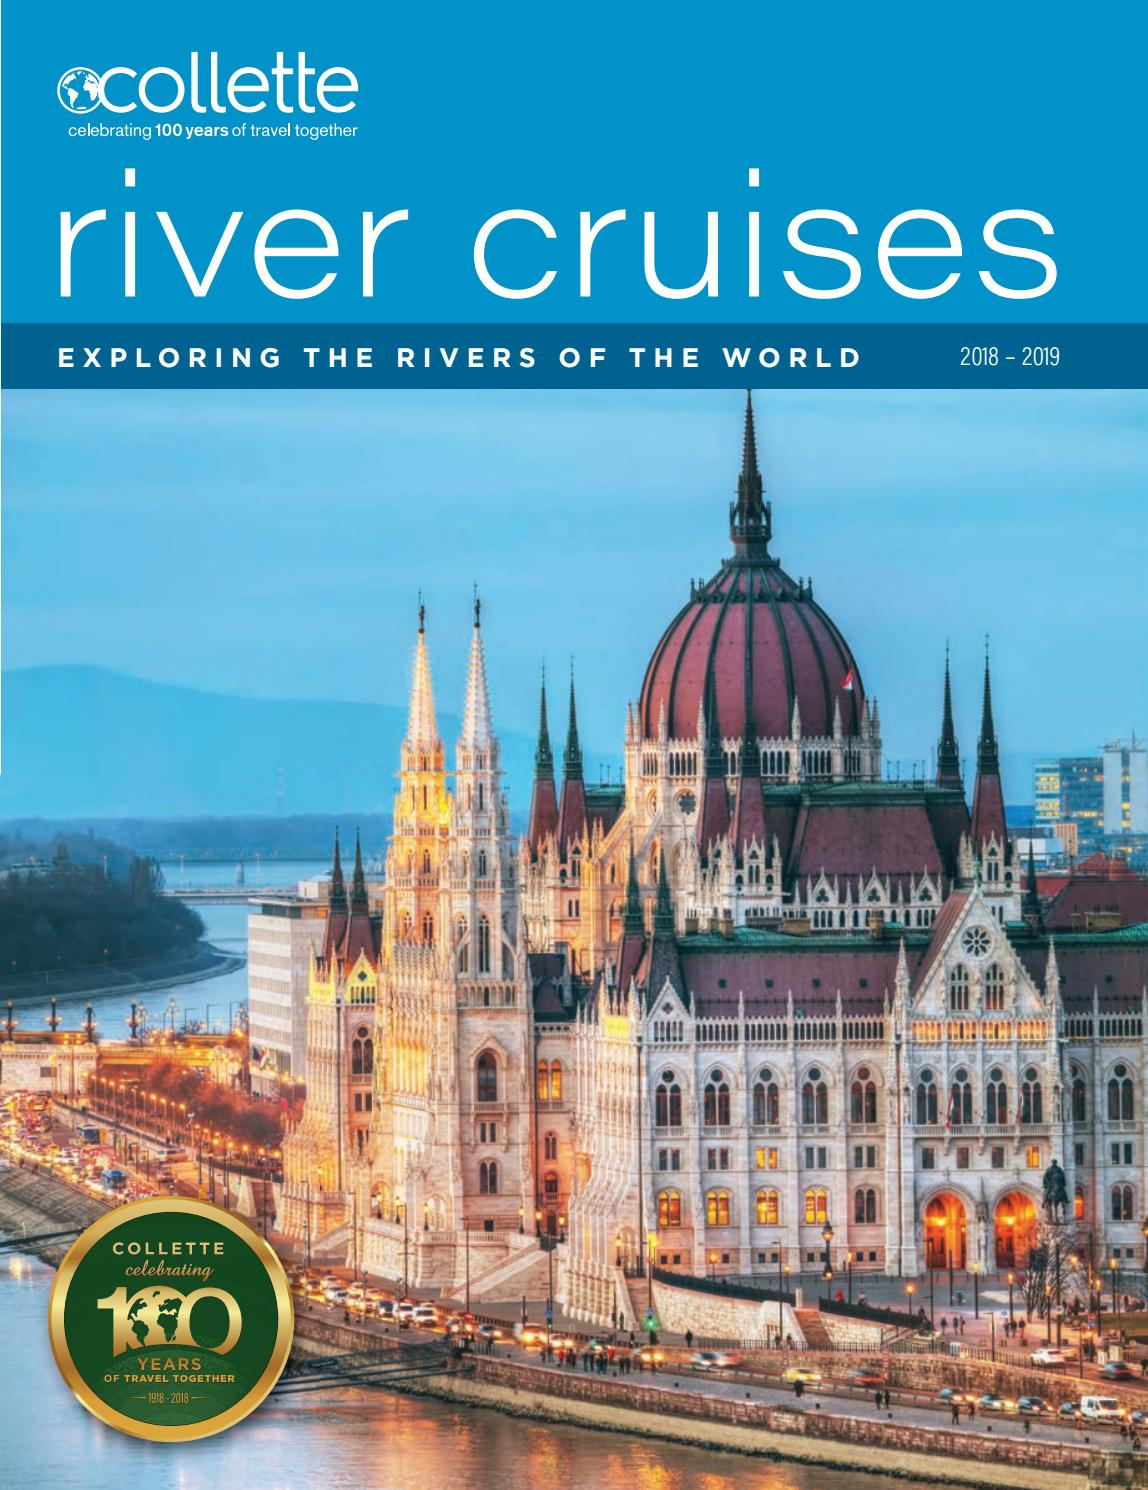 18 7wvme river cruise remail ebroch cad by Collette - issuu